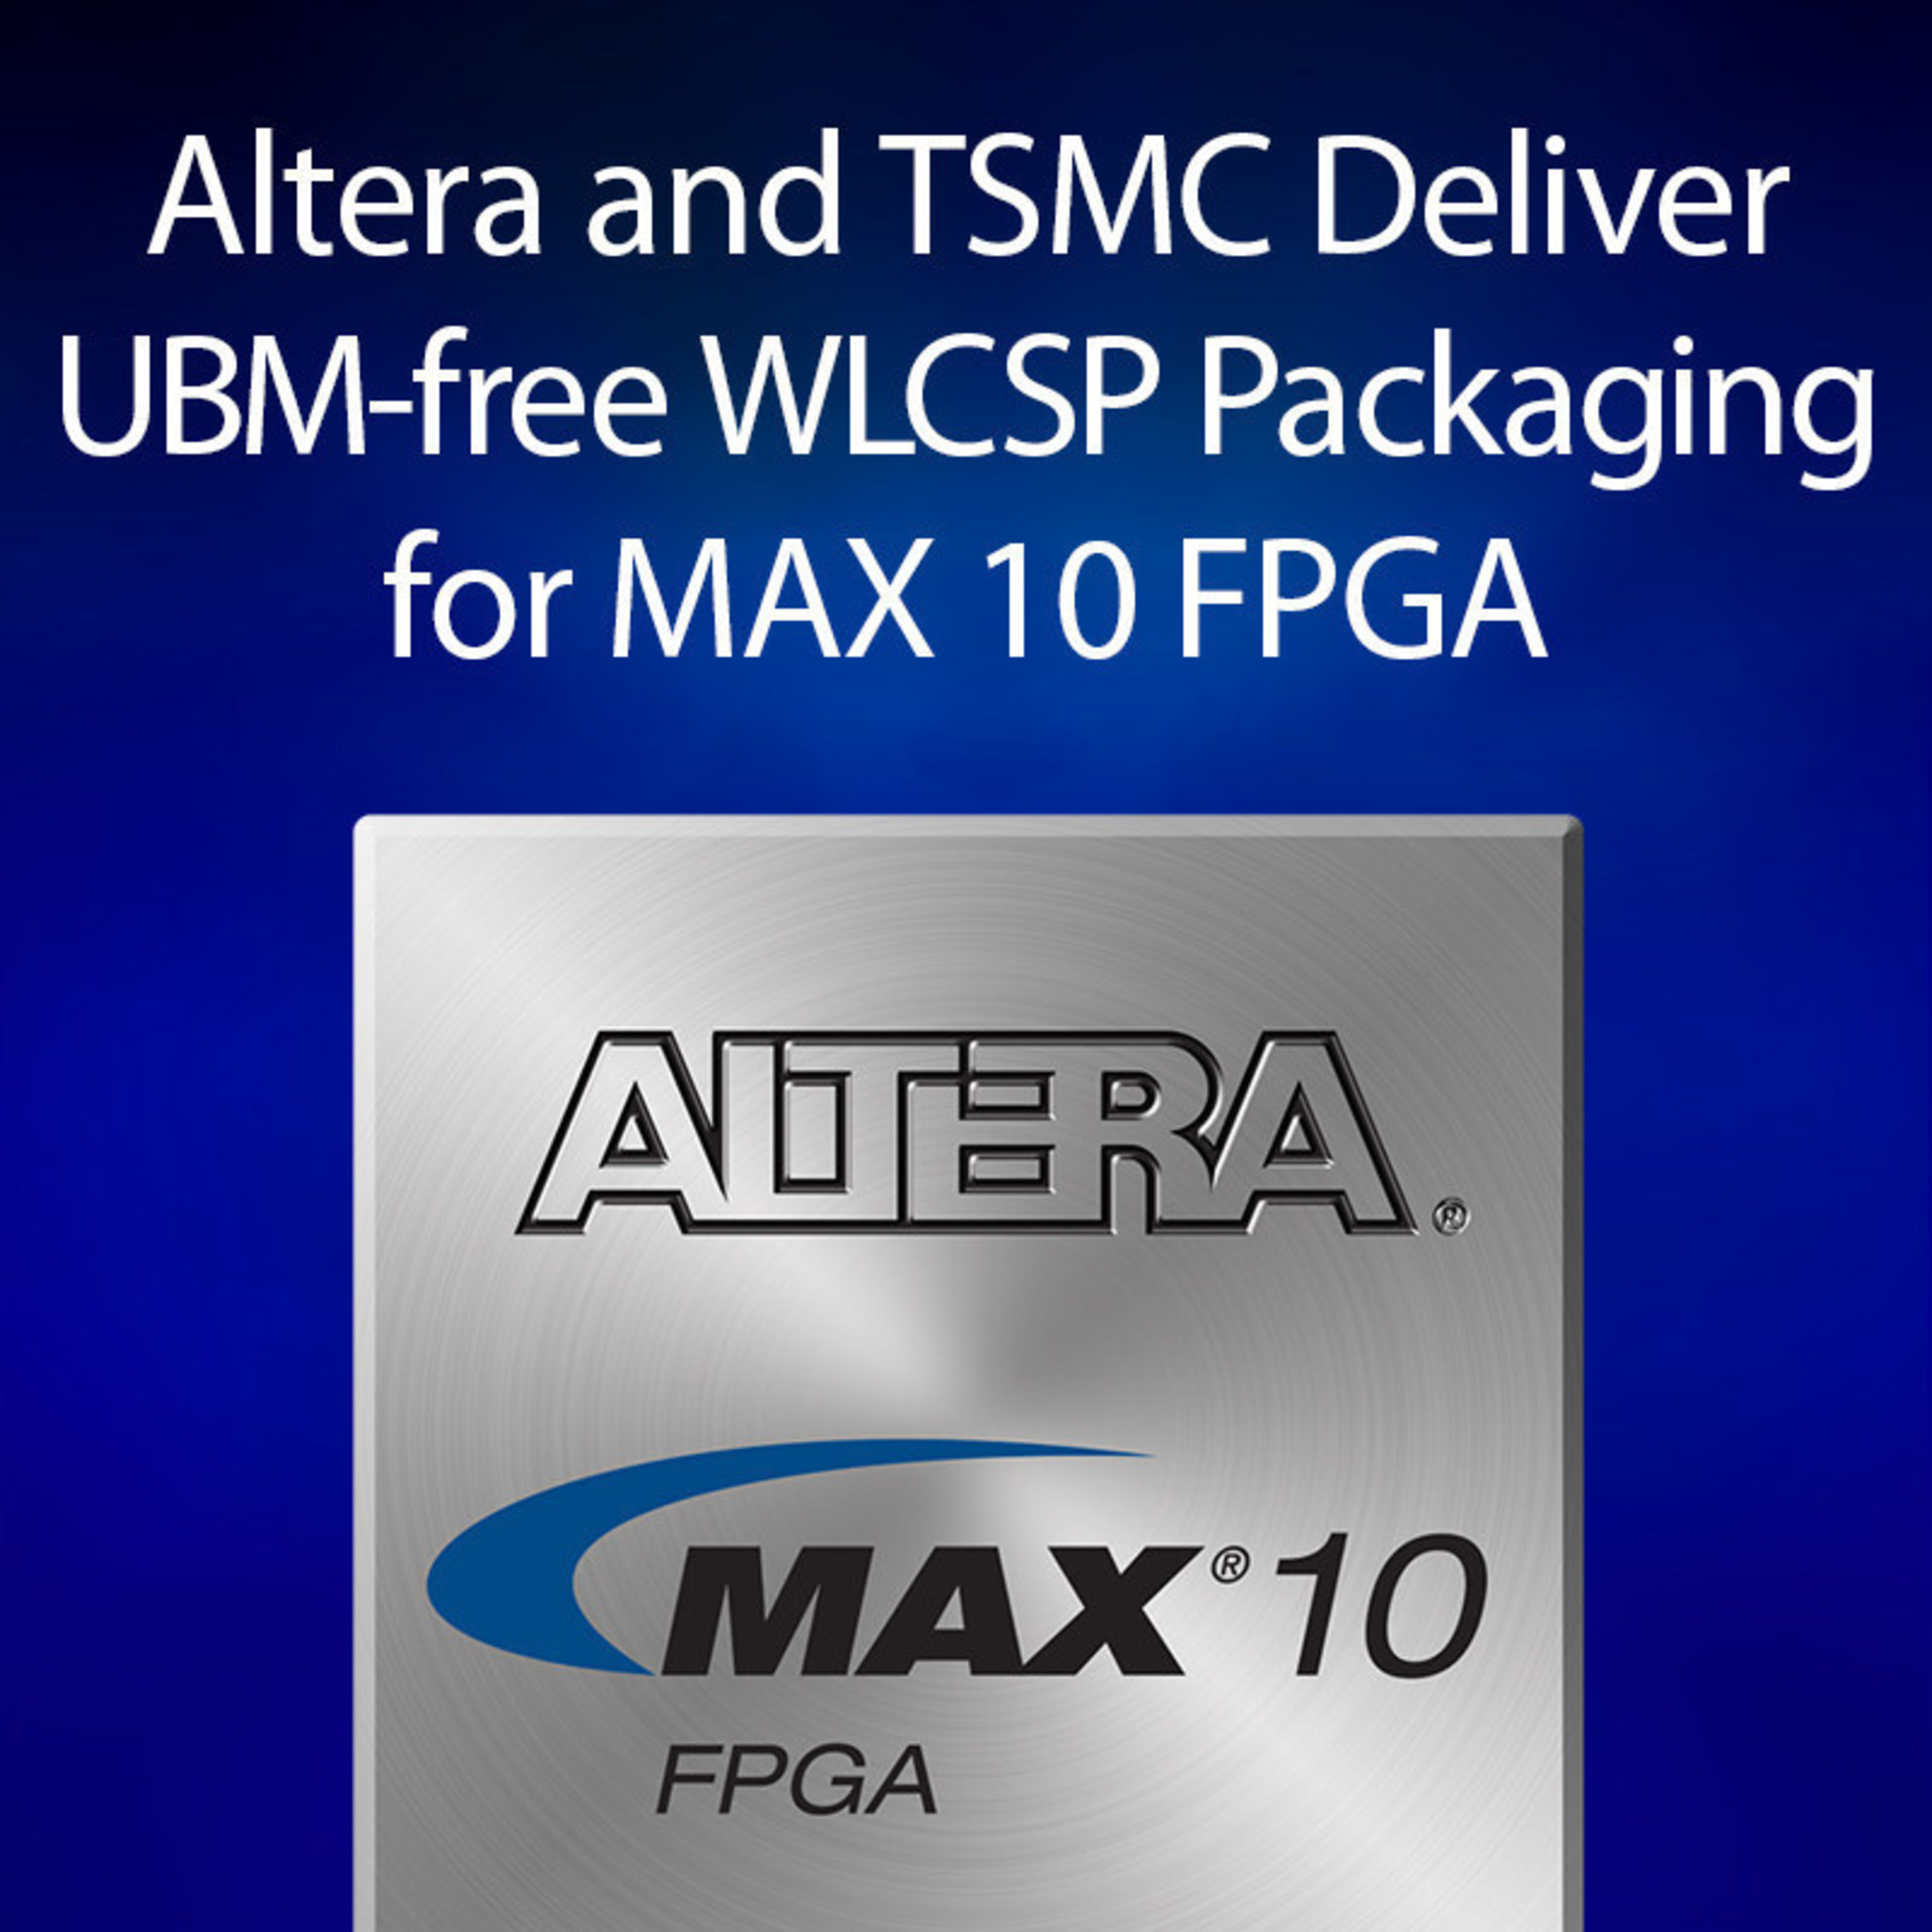 Altera and TSMC Innovate Industry-first, UBM-free WLCSP Packaging Technology Platform for MAX' 10 FPGA Products